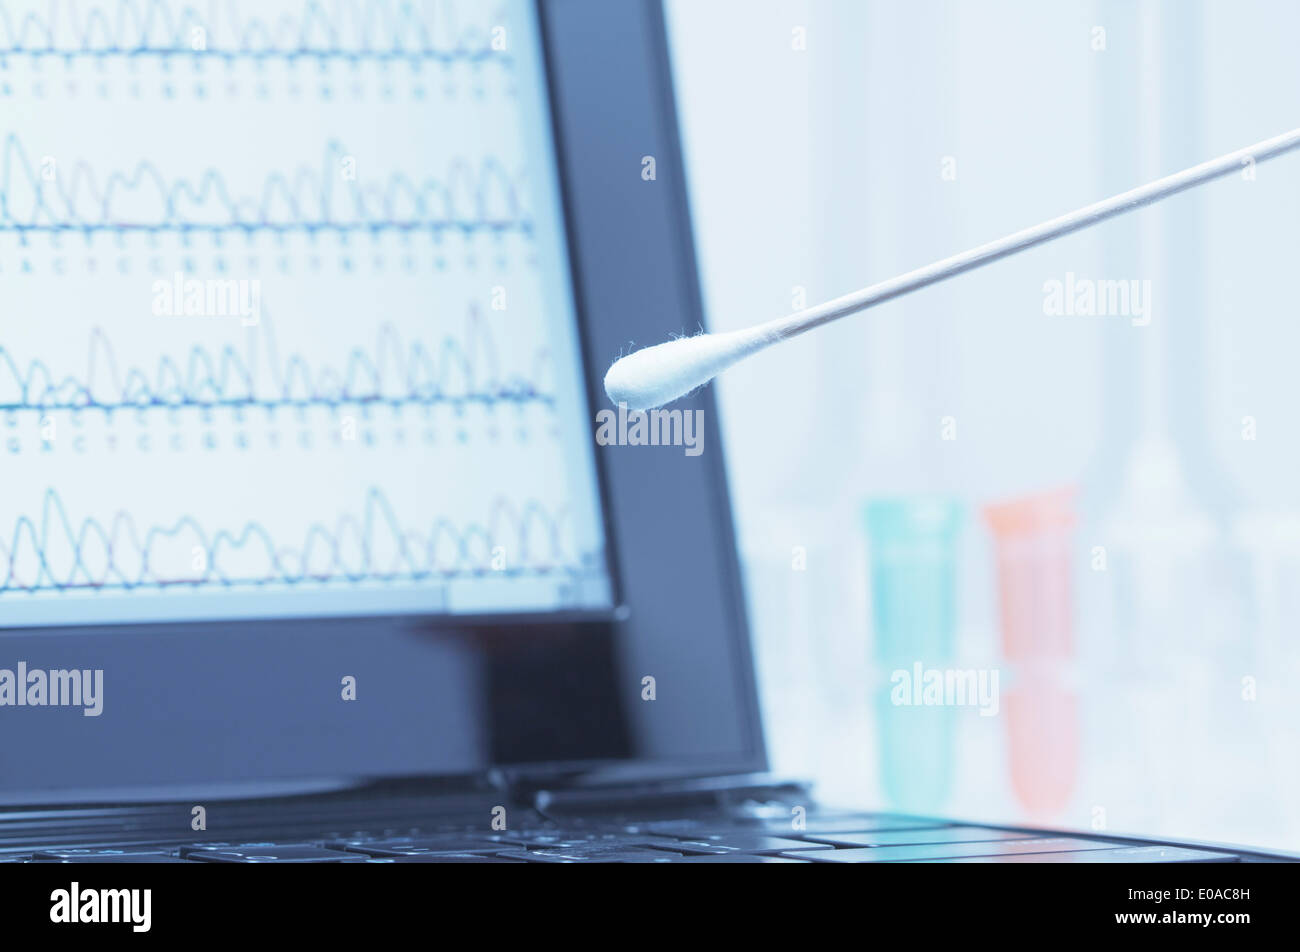 Cotton swab with saliva in front of a laptop screen that displays results of automated DNA sequencing - Stock Image